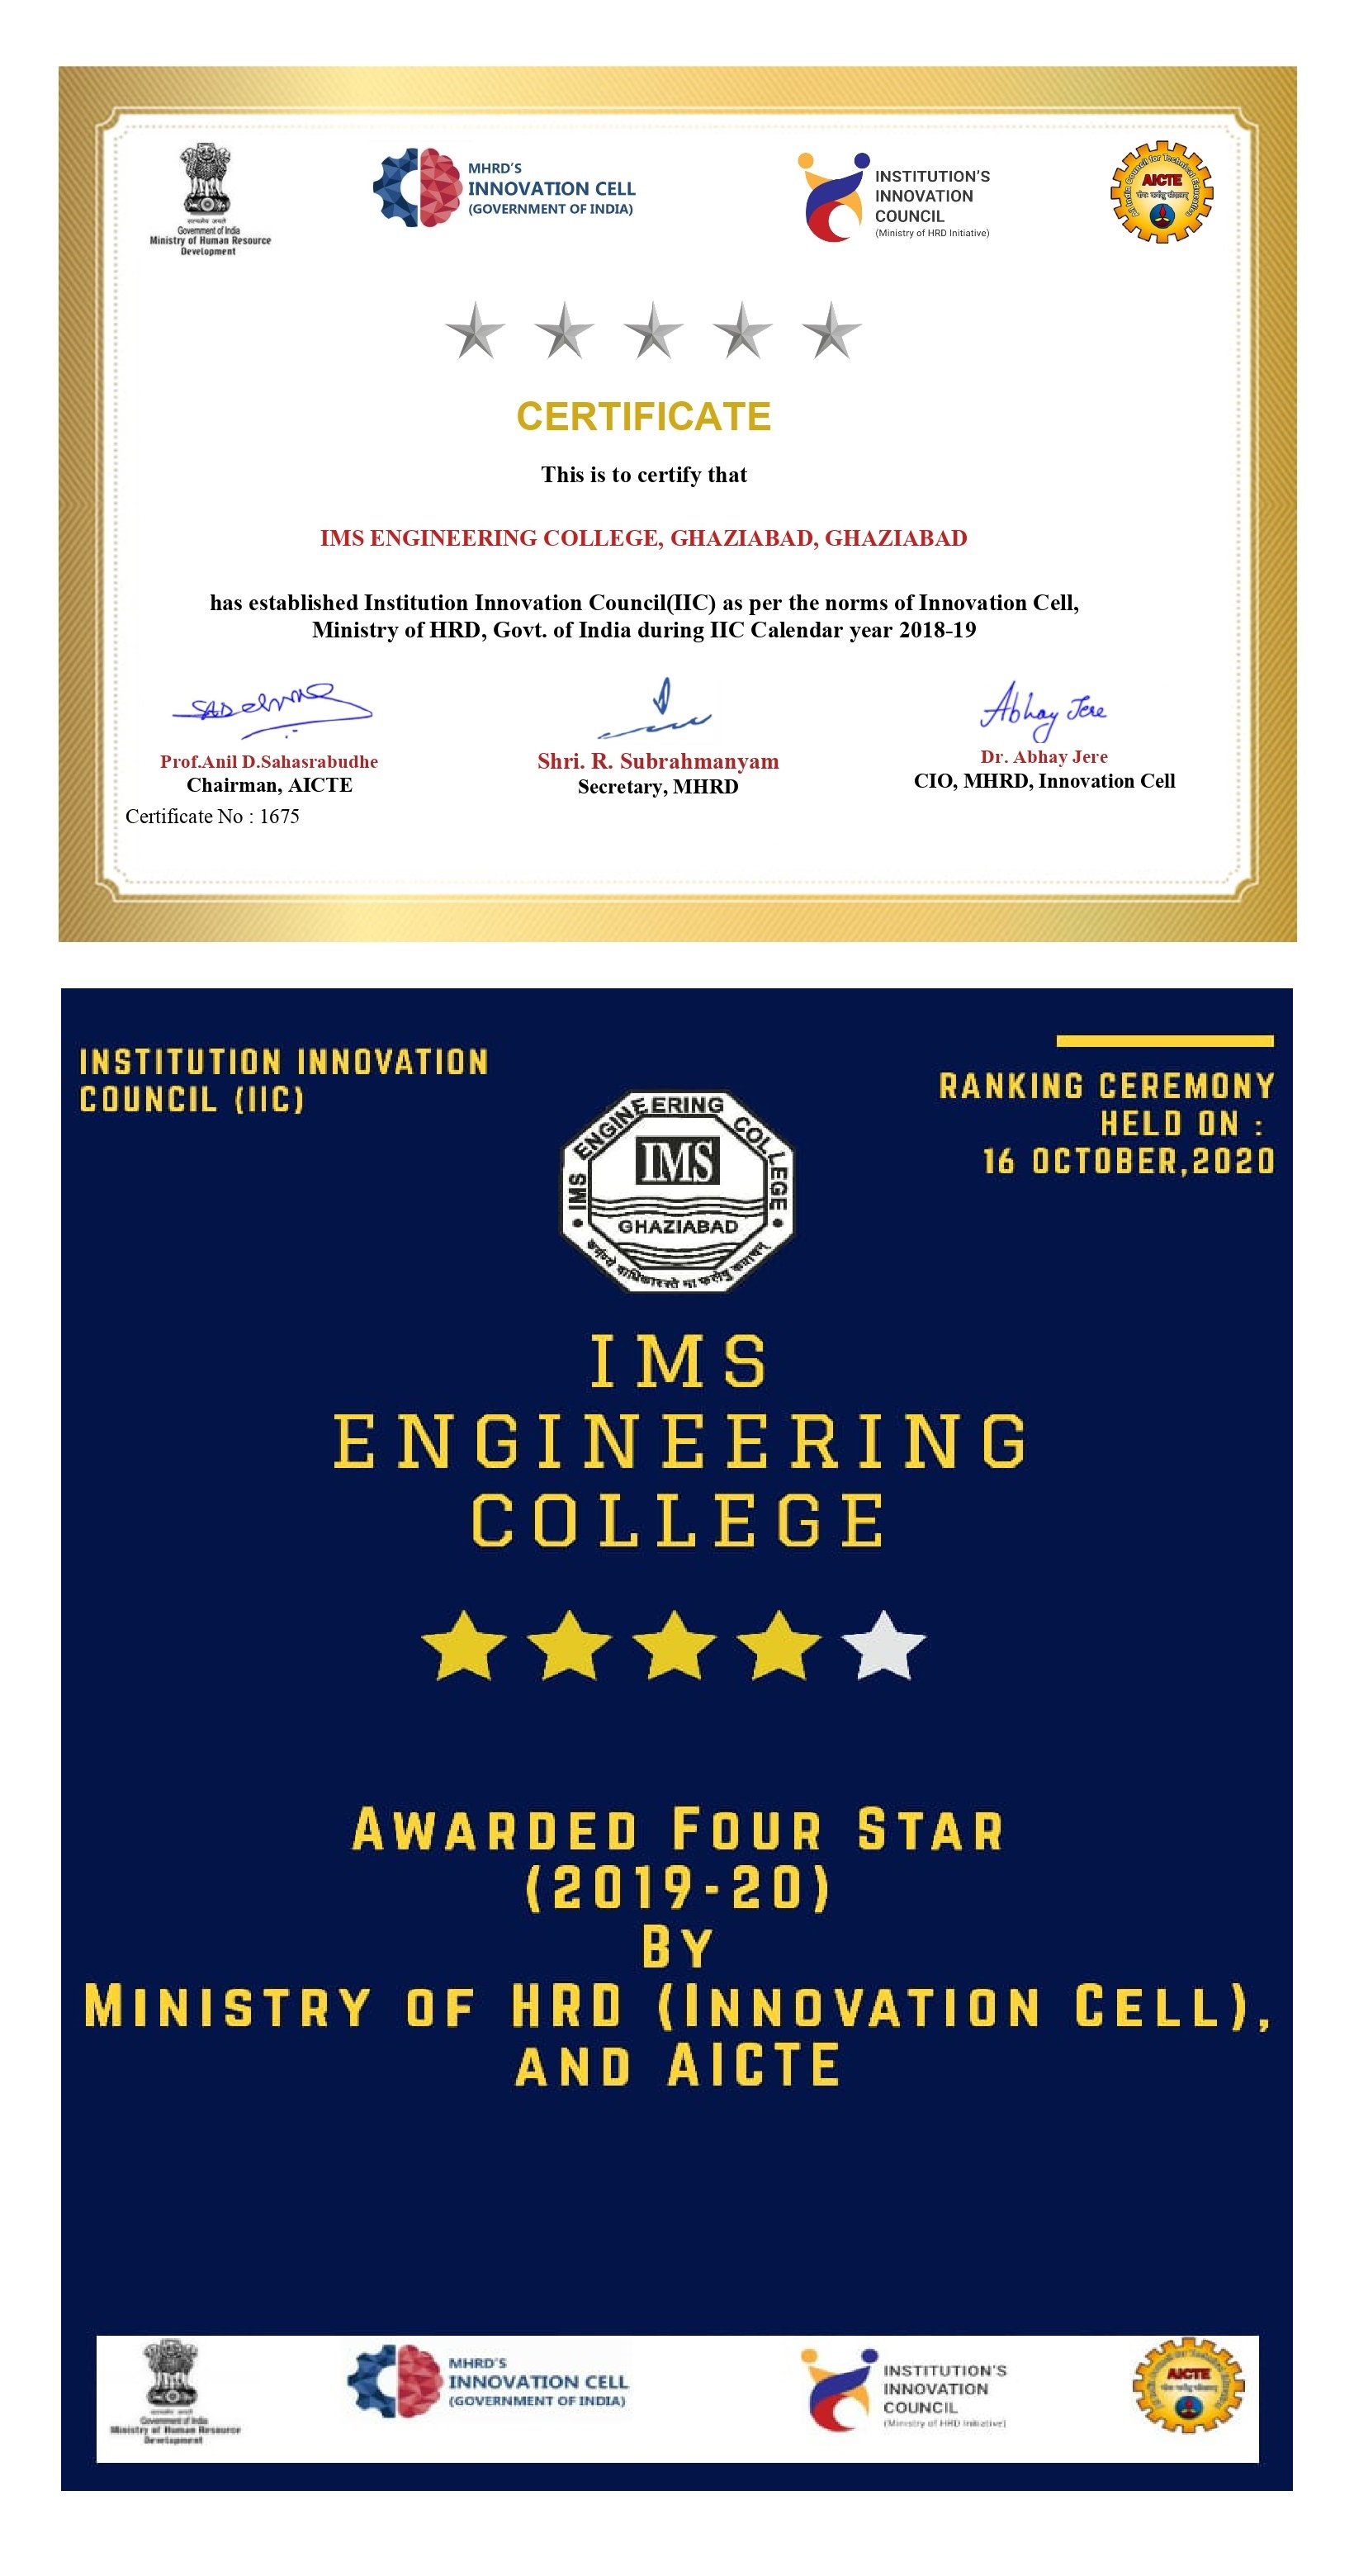 IIC Certificate Of Establishment awarded to IMSEC at First Annual Innovation Festival of MHRD Innovation Cell.